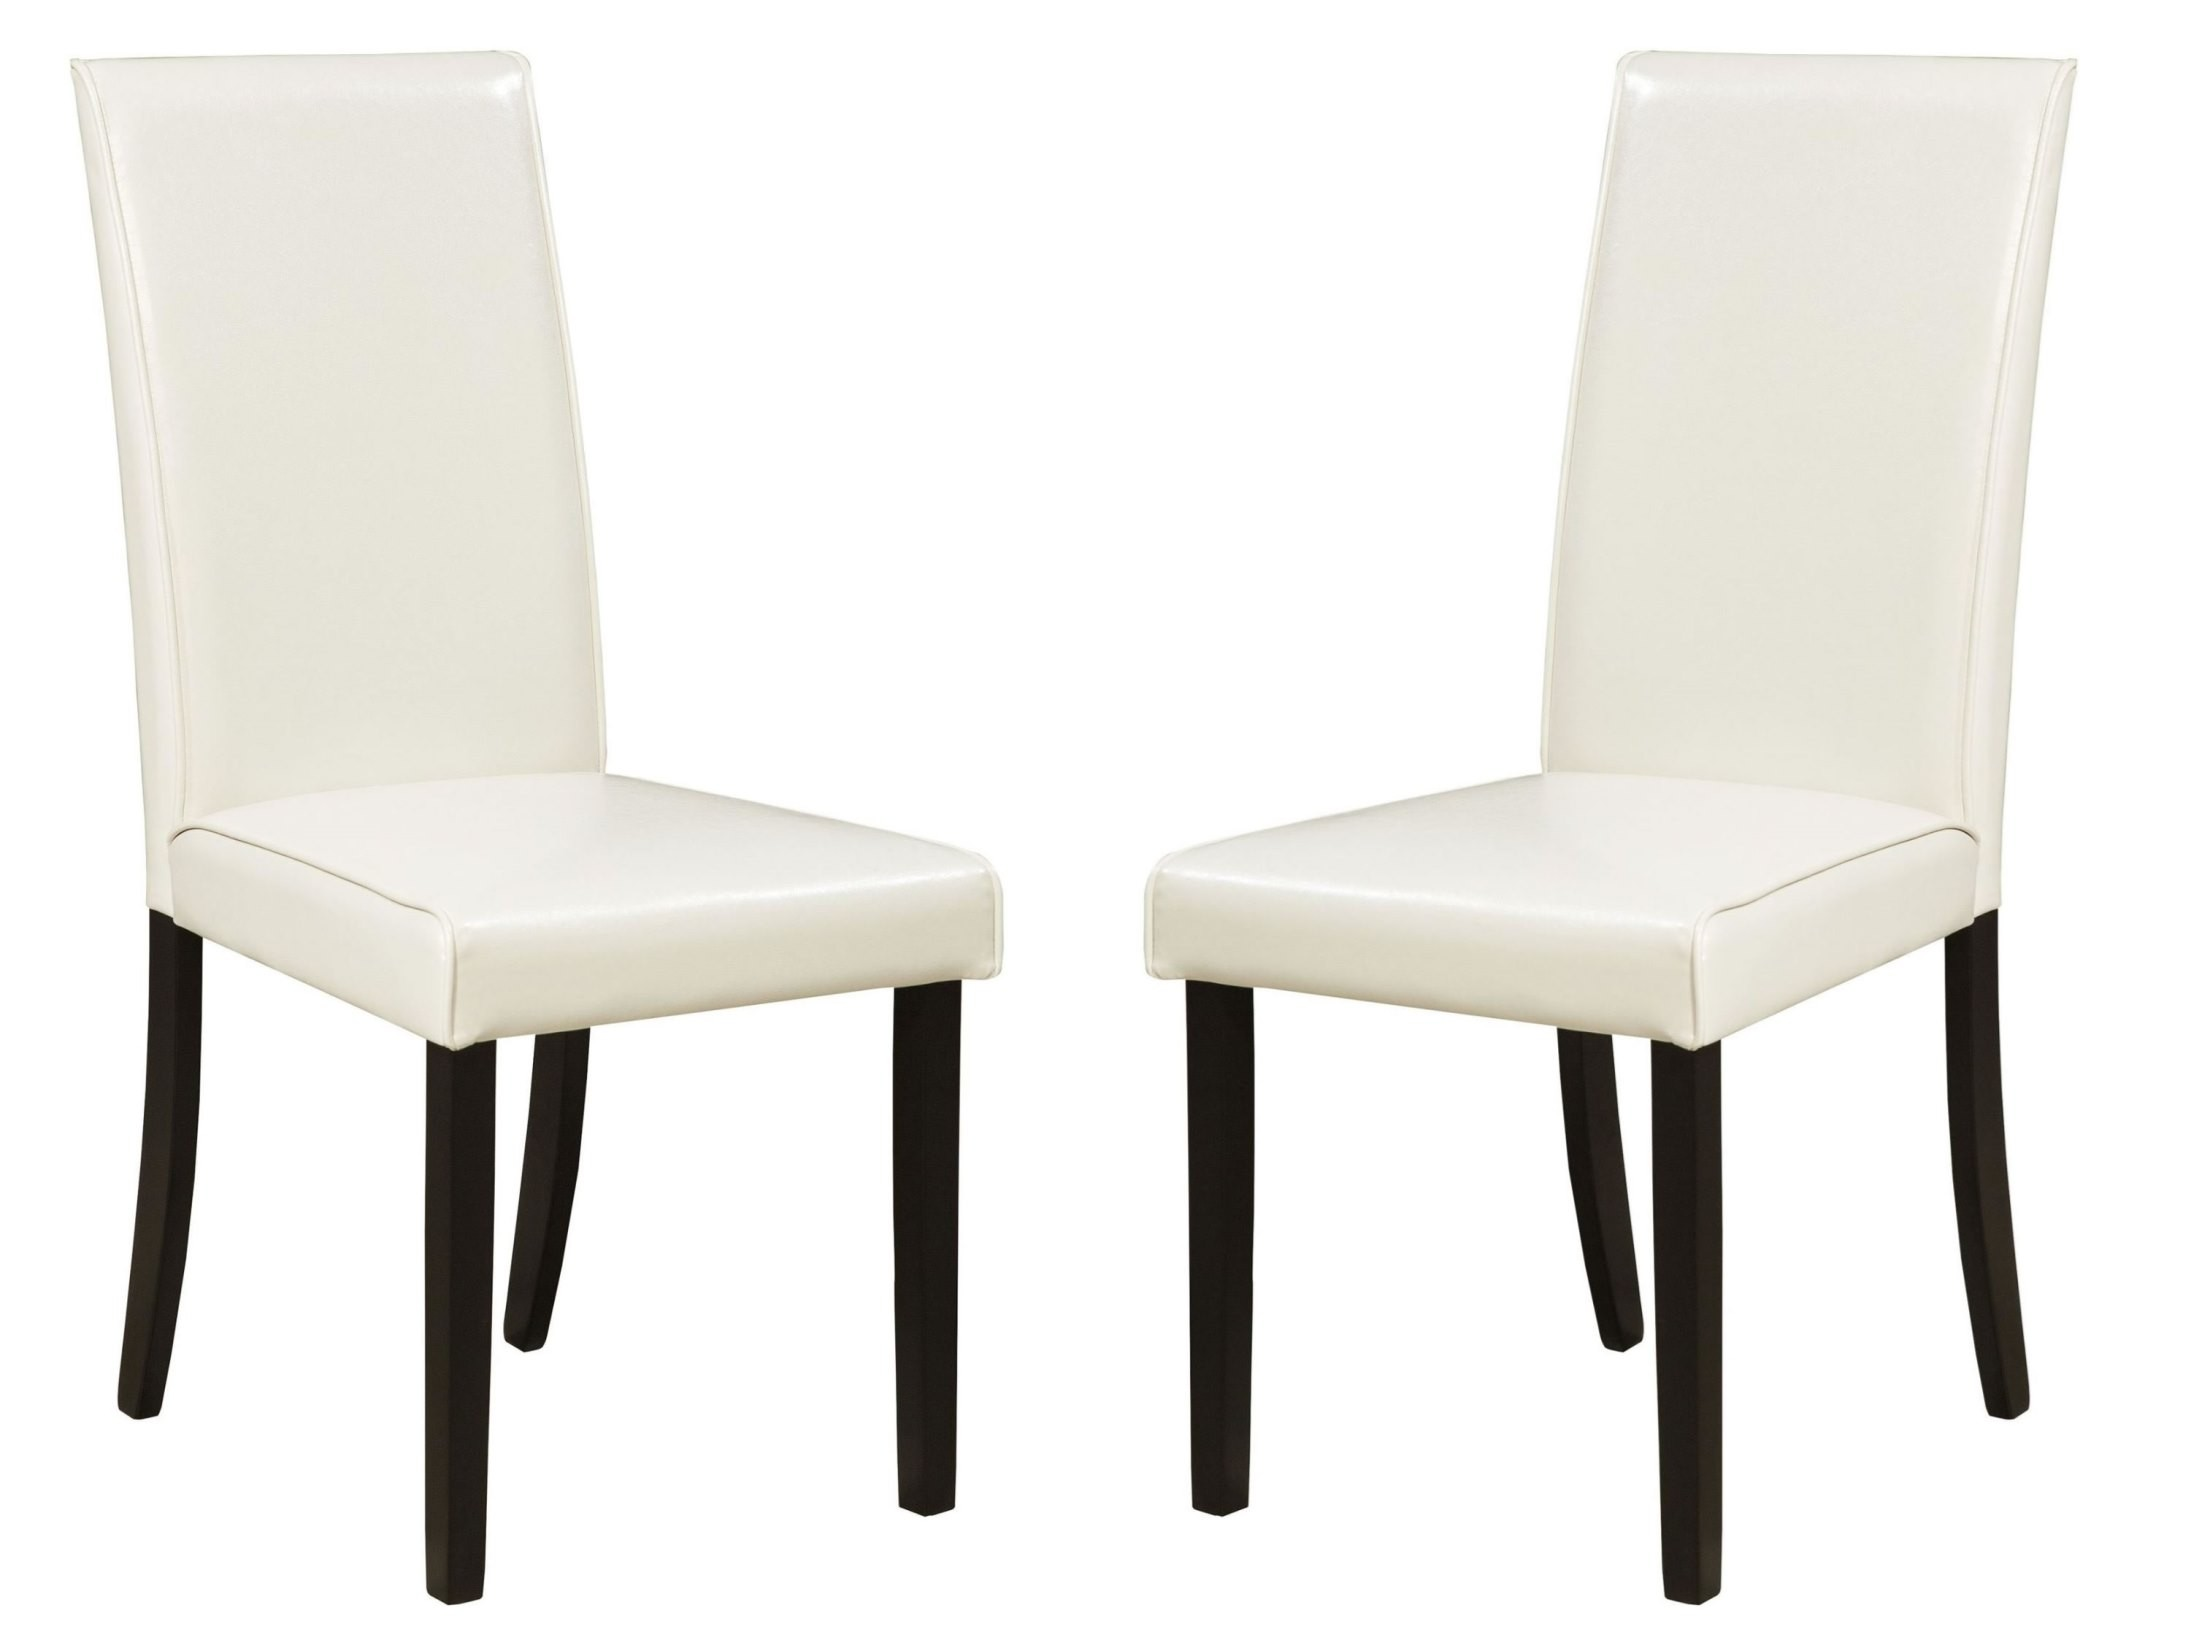 Ivory Dining Chairs Kimonte Ivory Upholstered Dining Side Chair Set Of 2 From